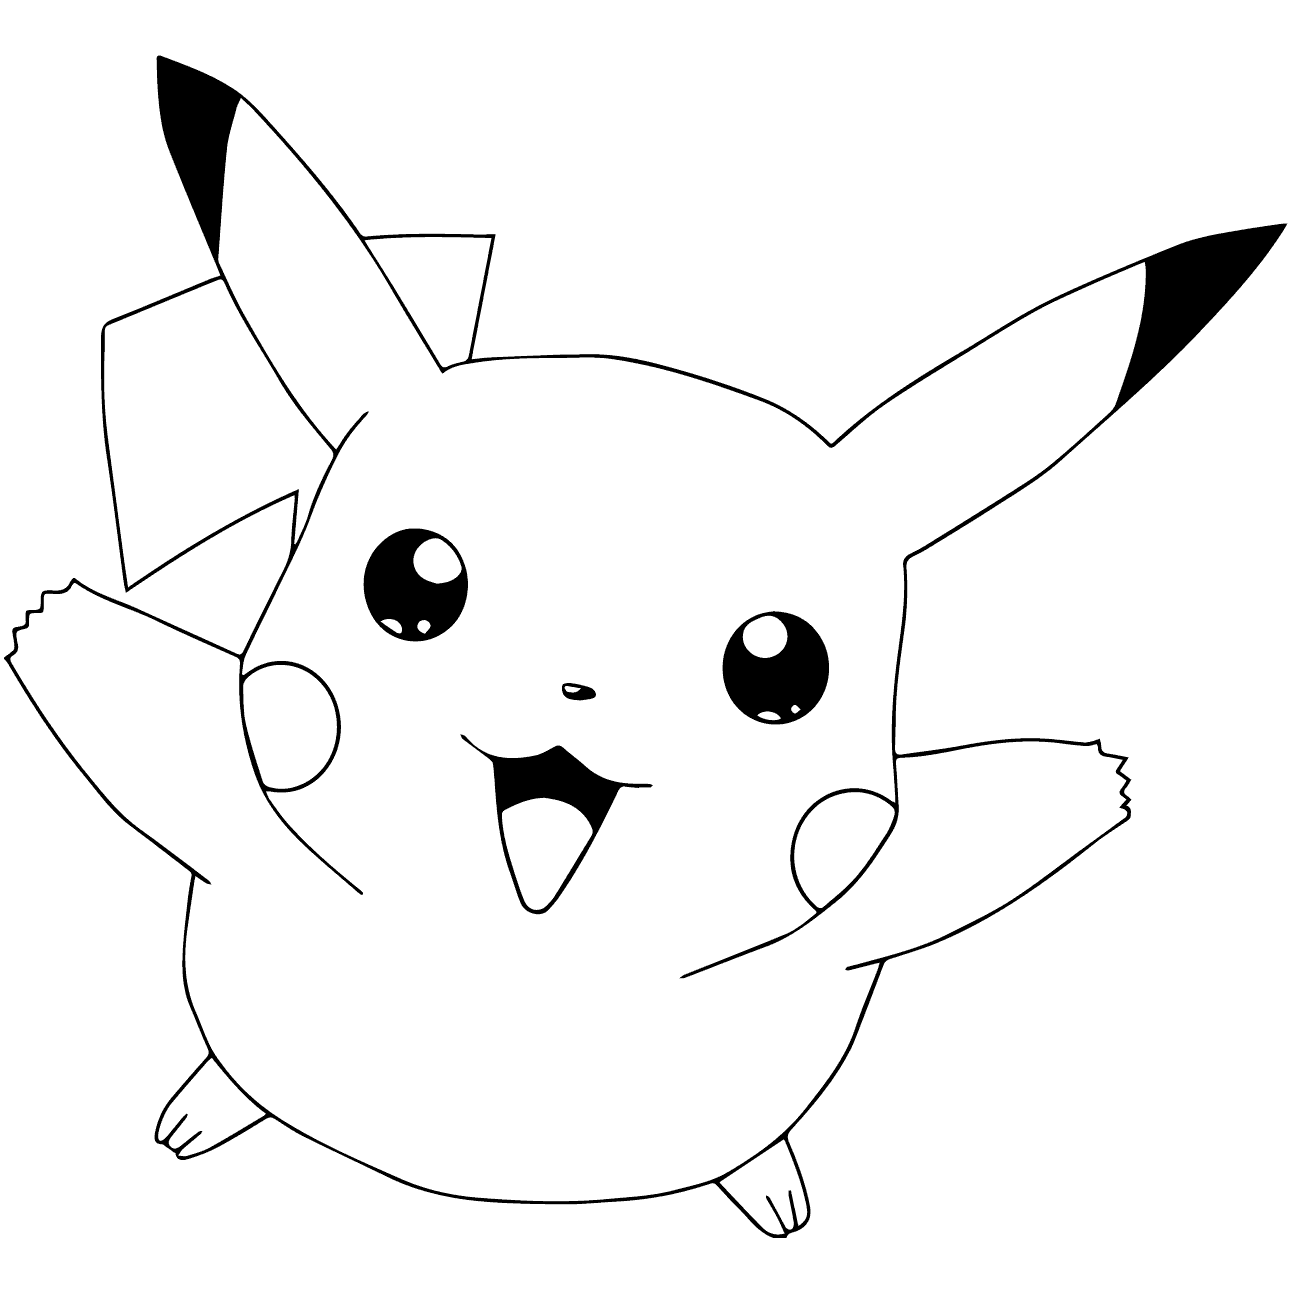 pikachu images for coloring free printable pikachu coloring pages coloring junction pikachu coloring images for